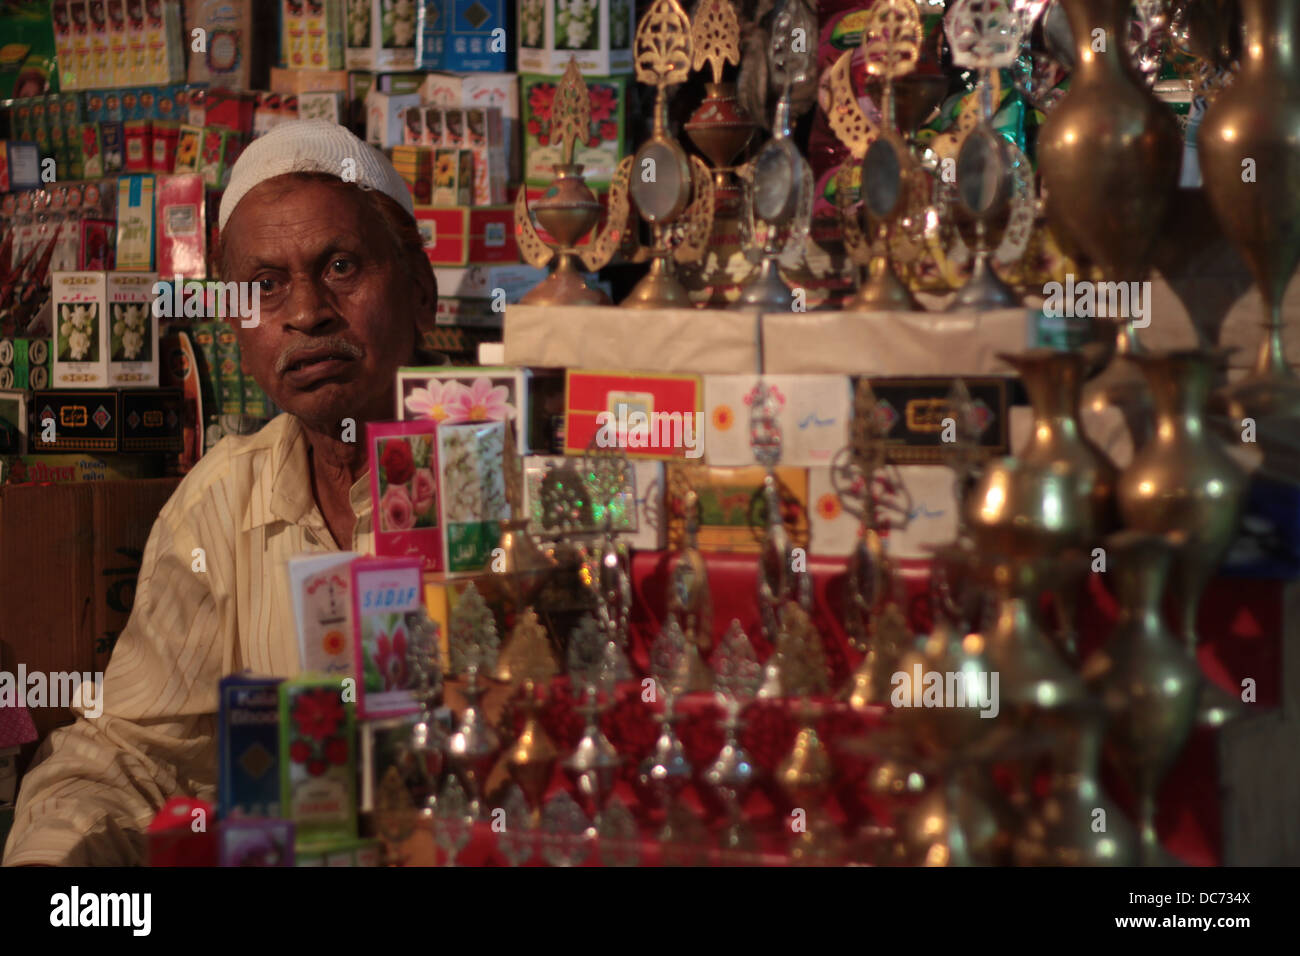 A Muslim shopkeeper sells traditional items on the occasion of Eid in Delhi, India. - Stock Image